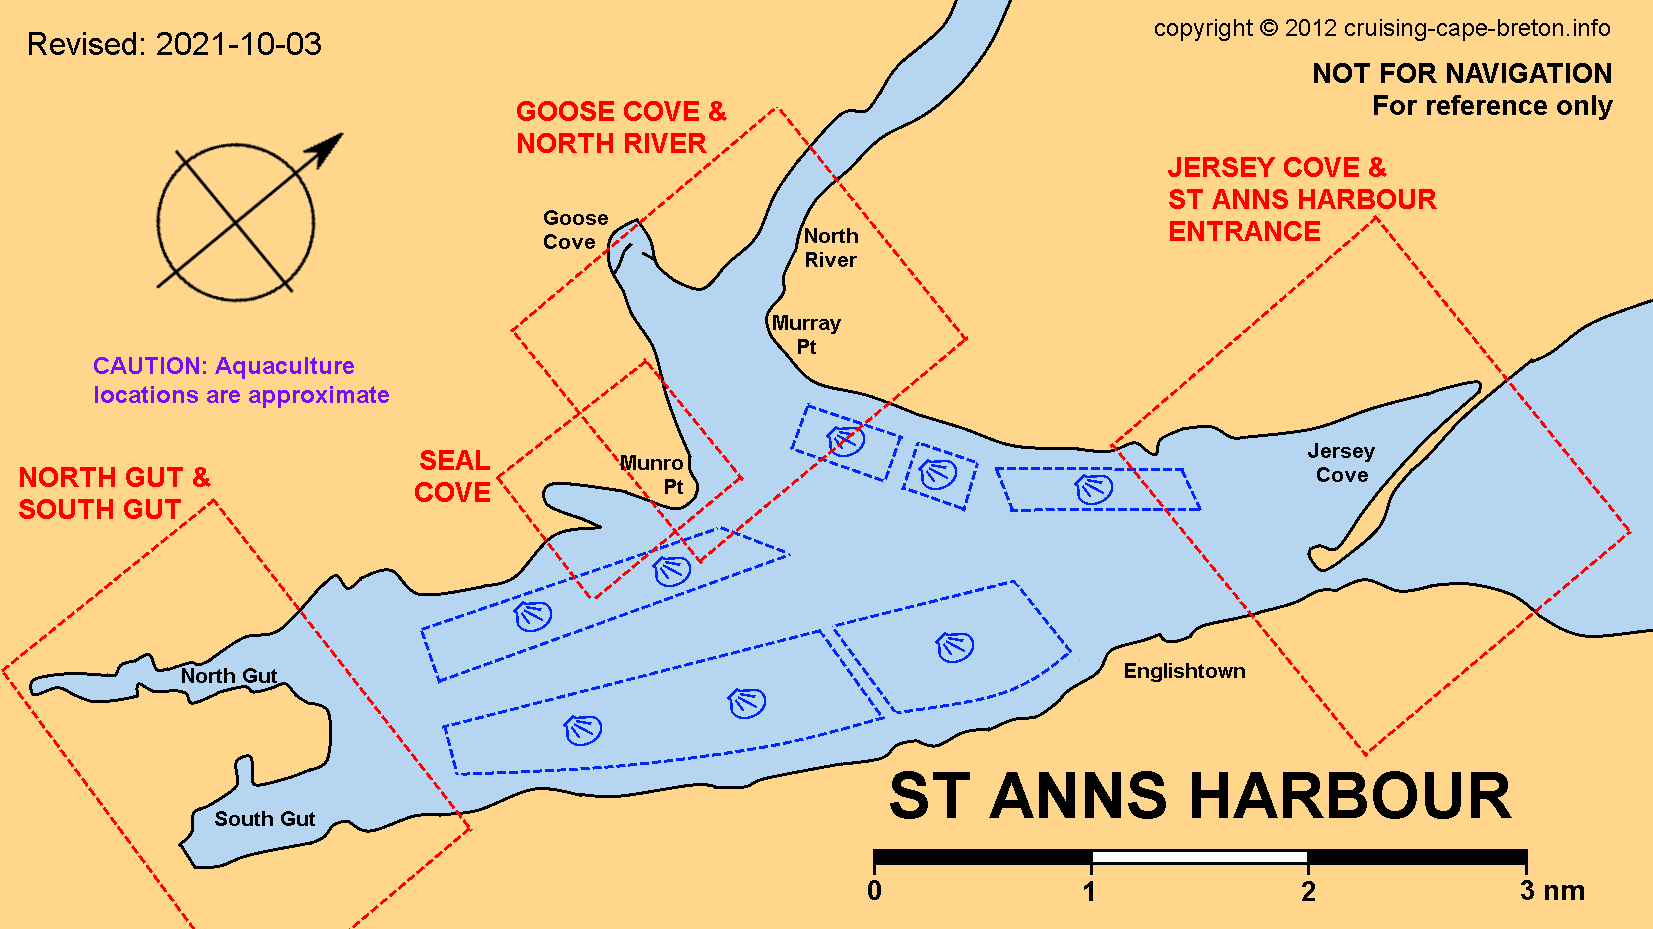 Key Chart to St Anns Harbour